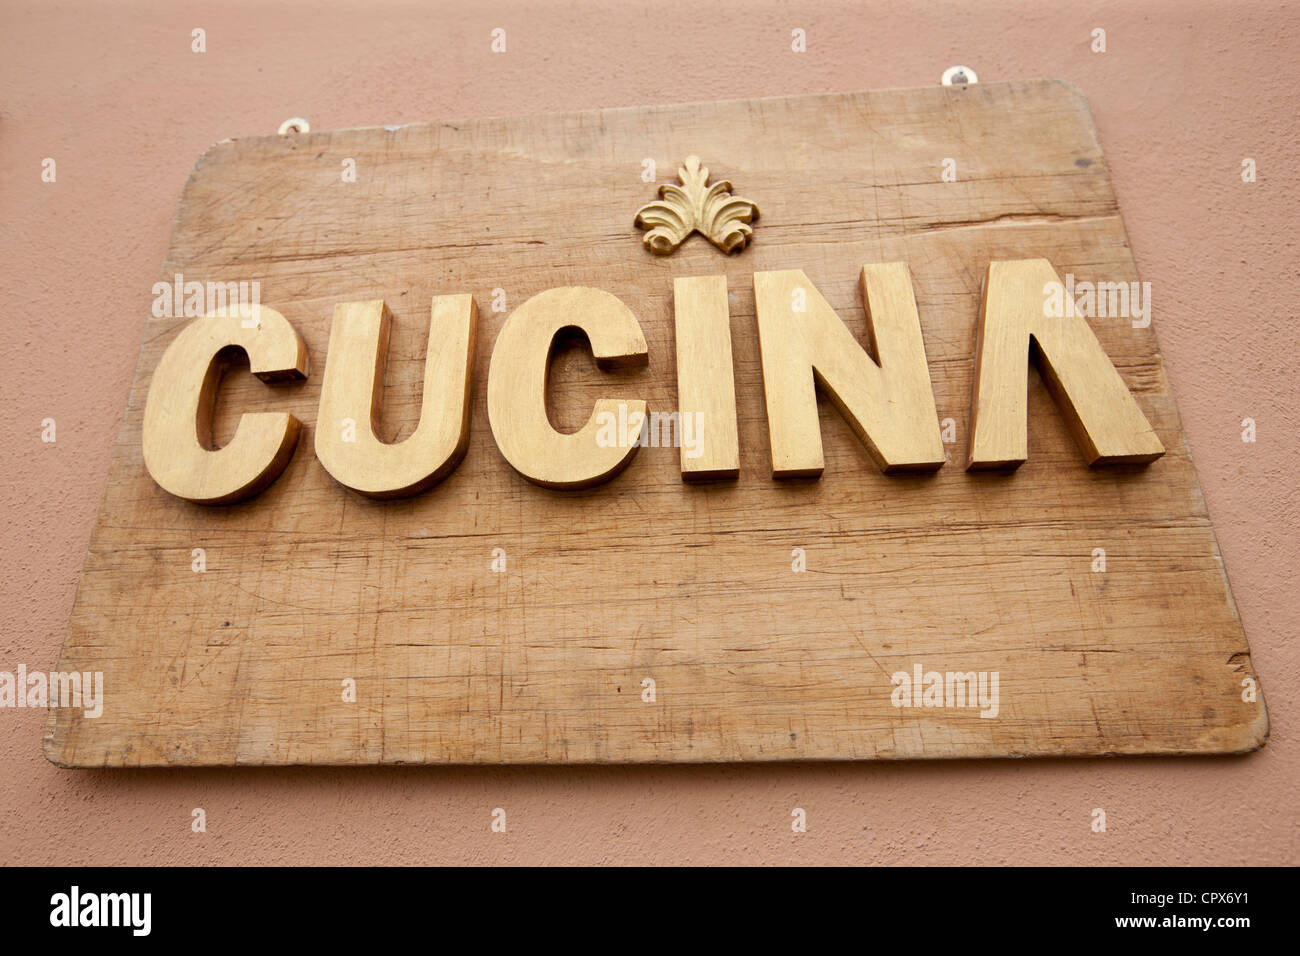 Cucina Kitchen Sign Cucina Stock Photos Cucina Stock Images Alamy